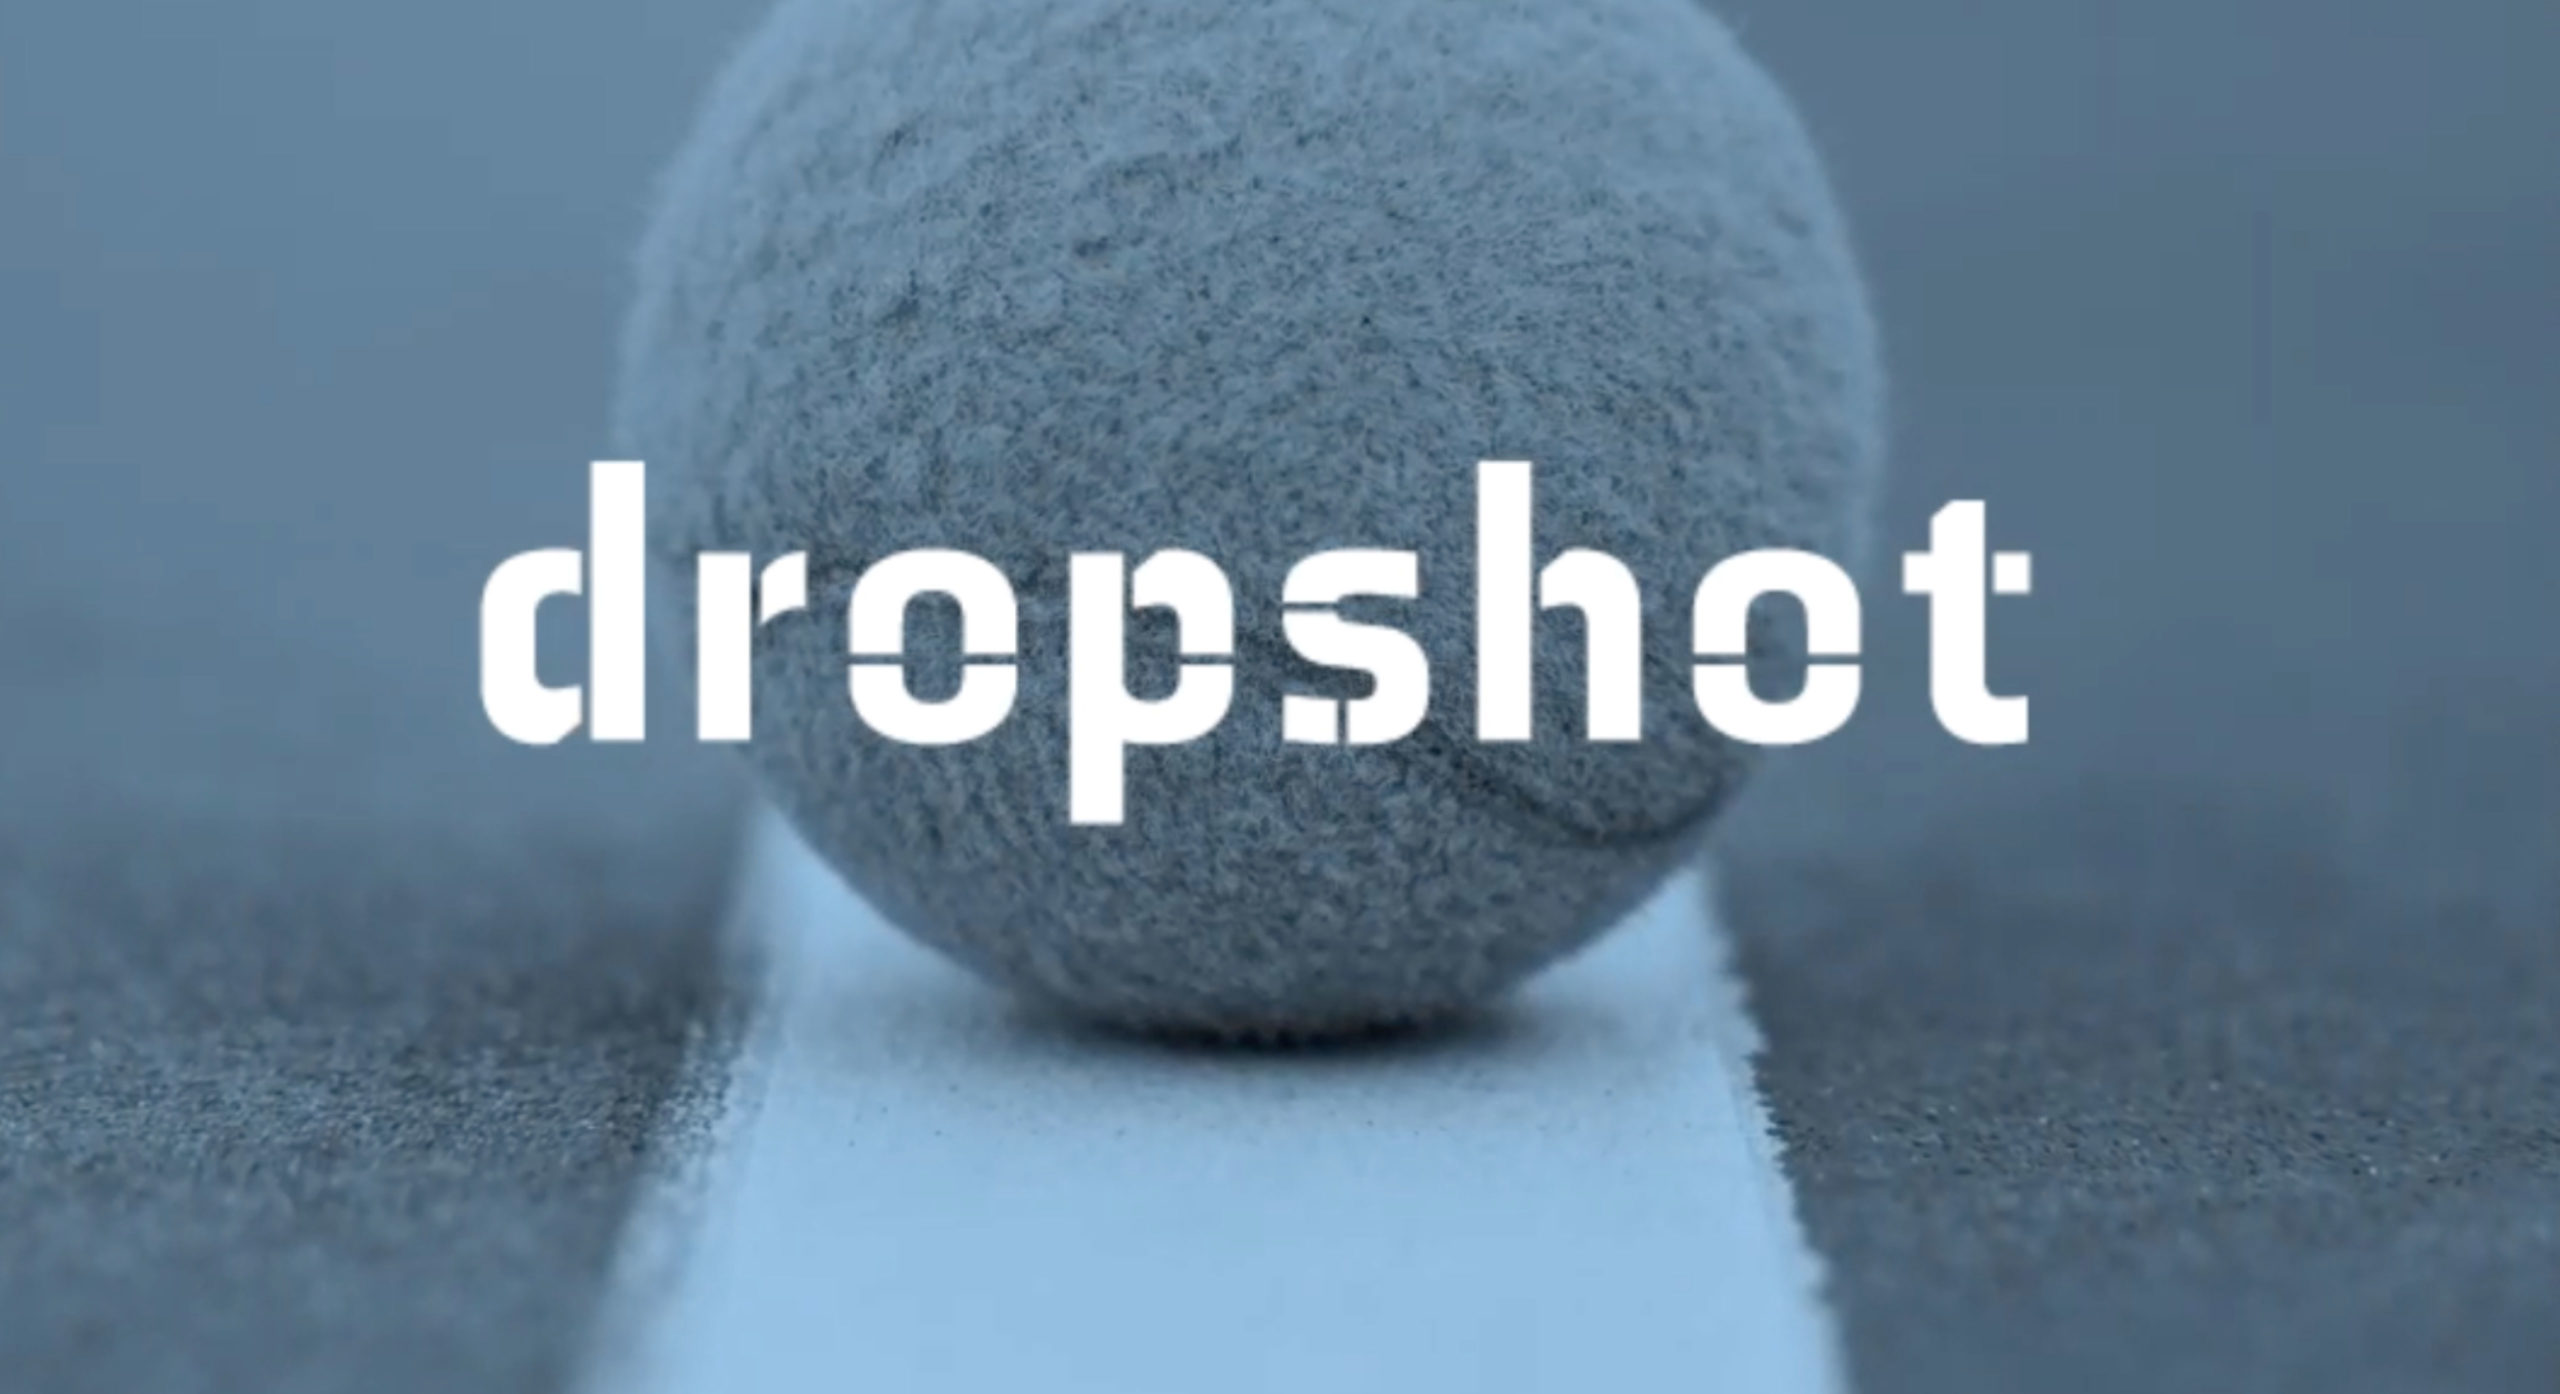 <a href='https://mpadesign.co.uk/motion-graphics/dropshot-motion-graphic-1/'></a>